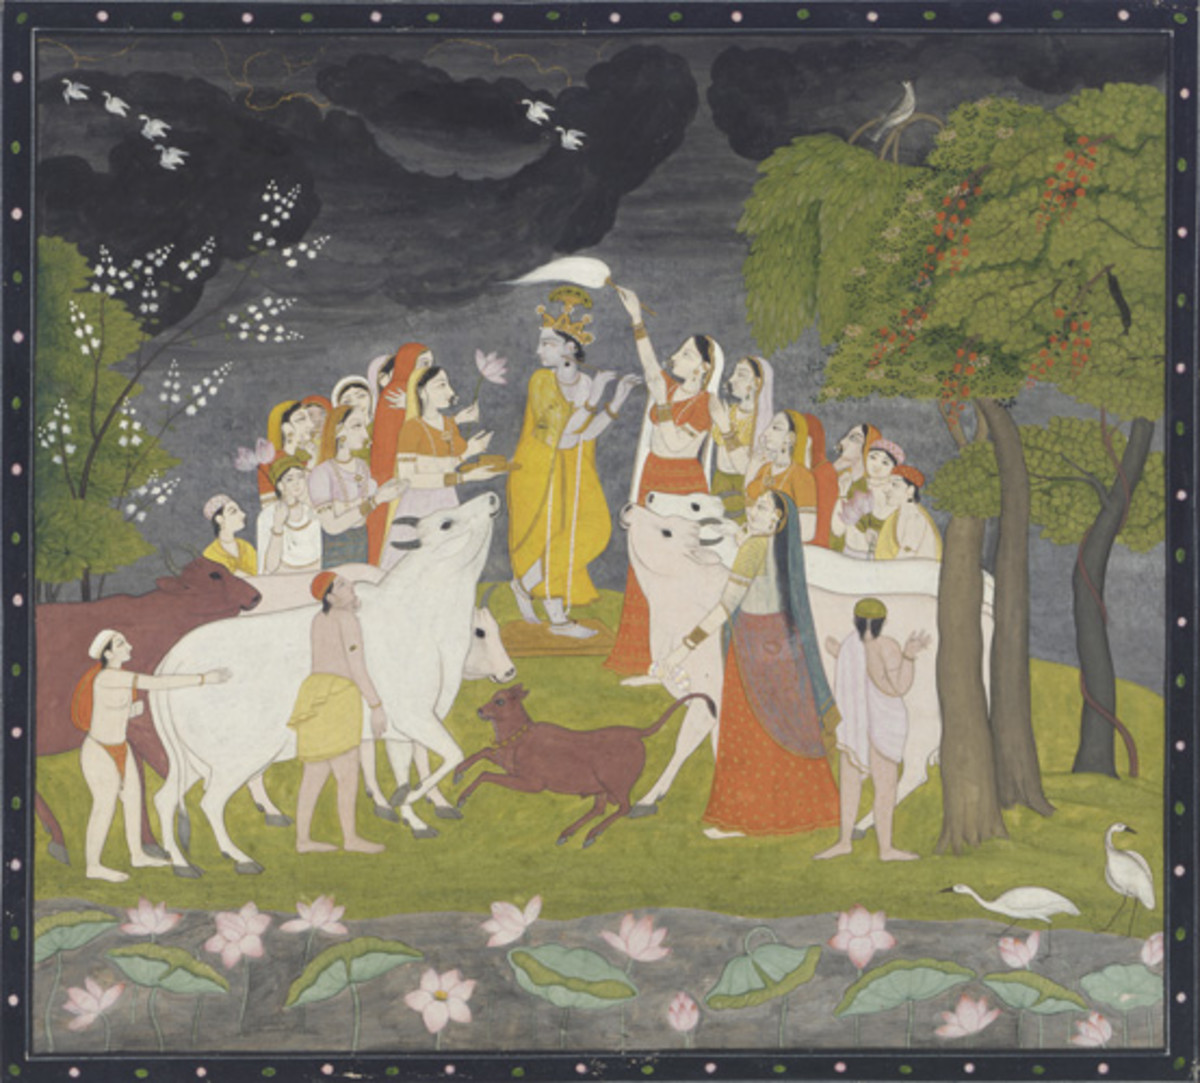 Kangra painting: Krishna playing a flute, ca. 1790-1800 Rajput period.